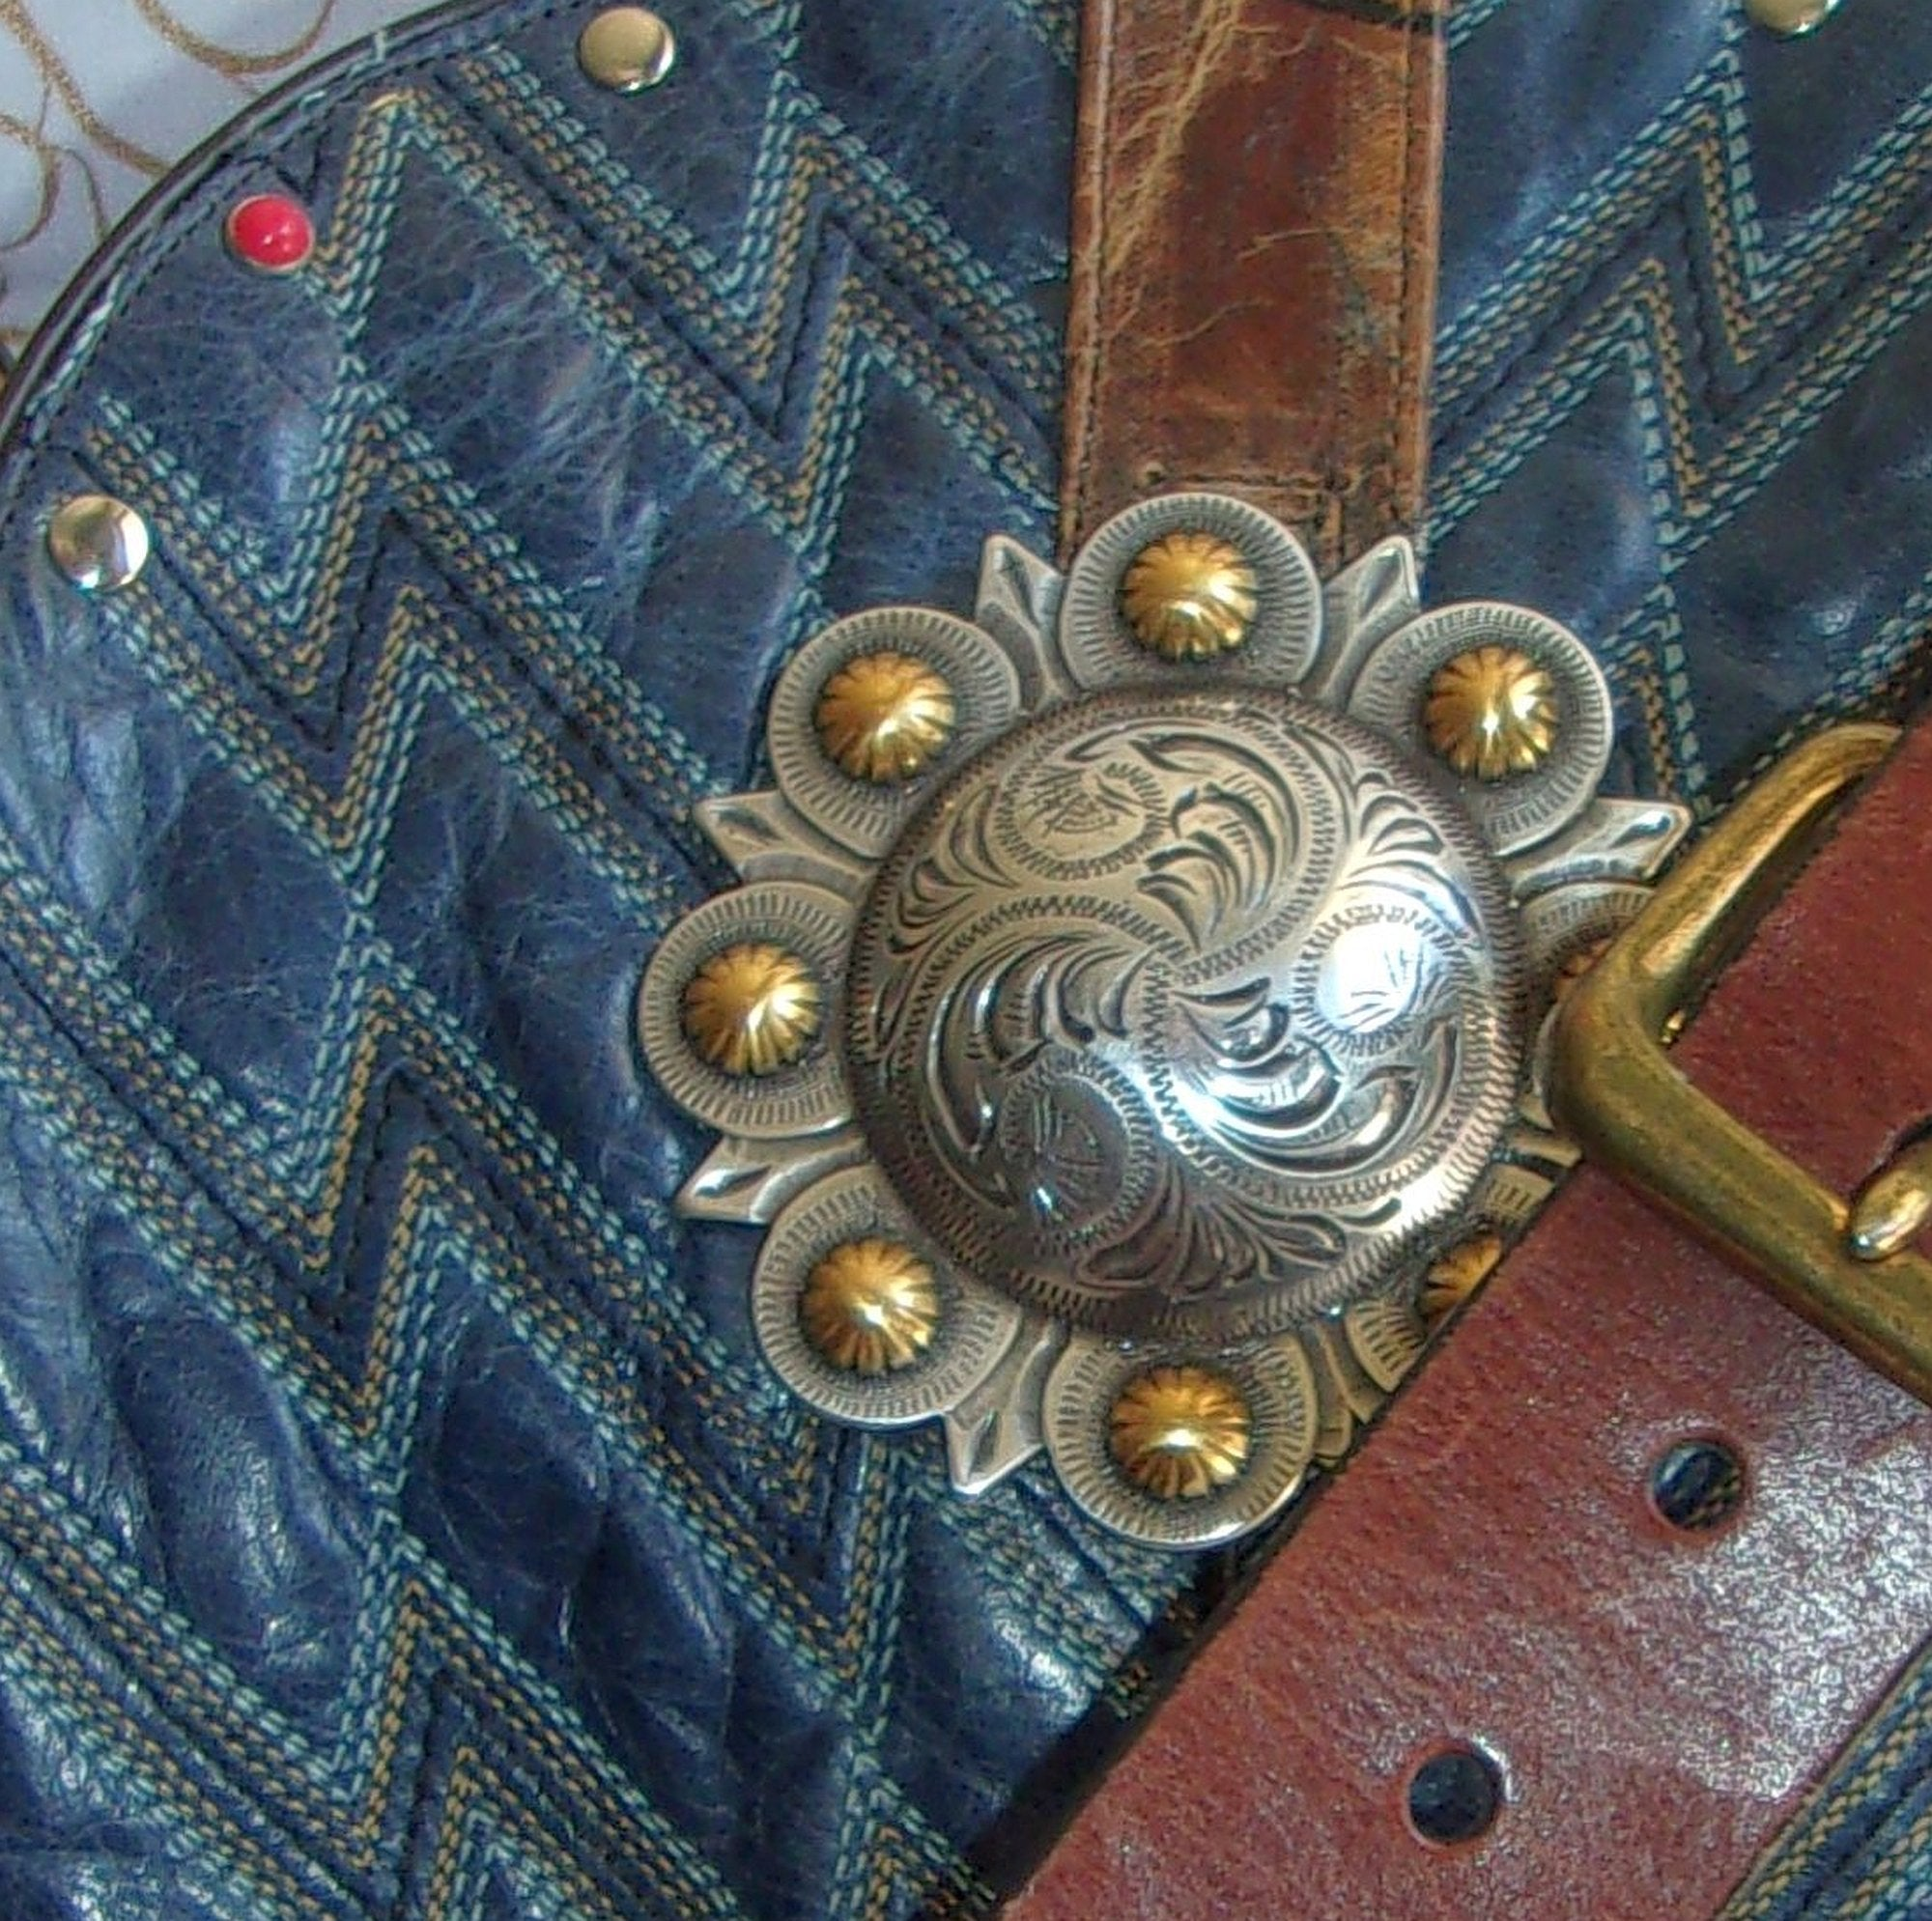 close up ts260 unique blue leather handbag handcrafted from reclaimed recycled cowboy boots